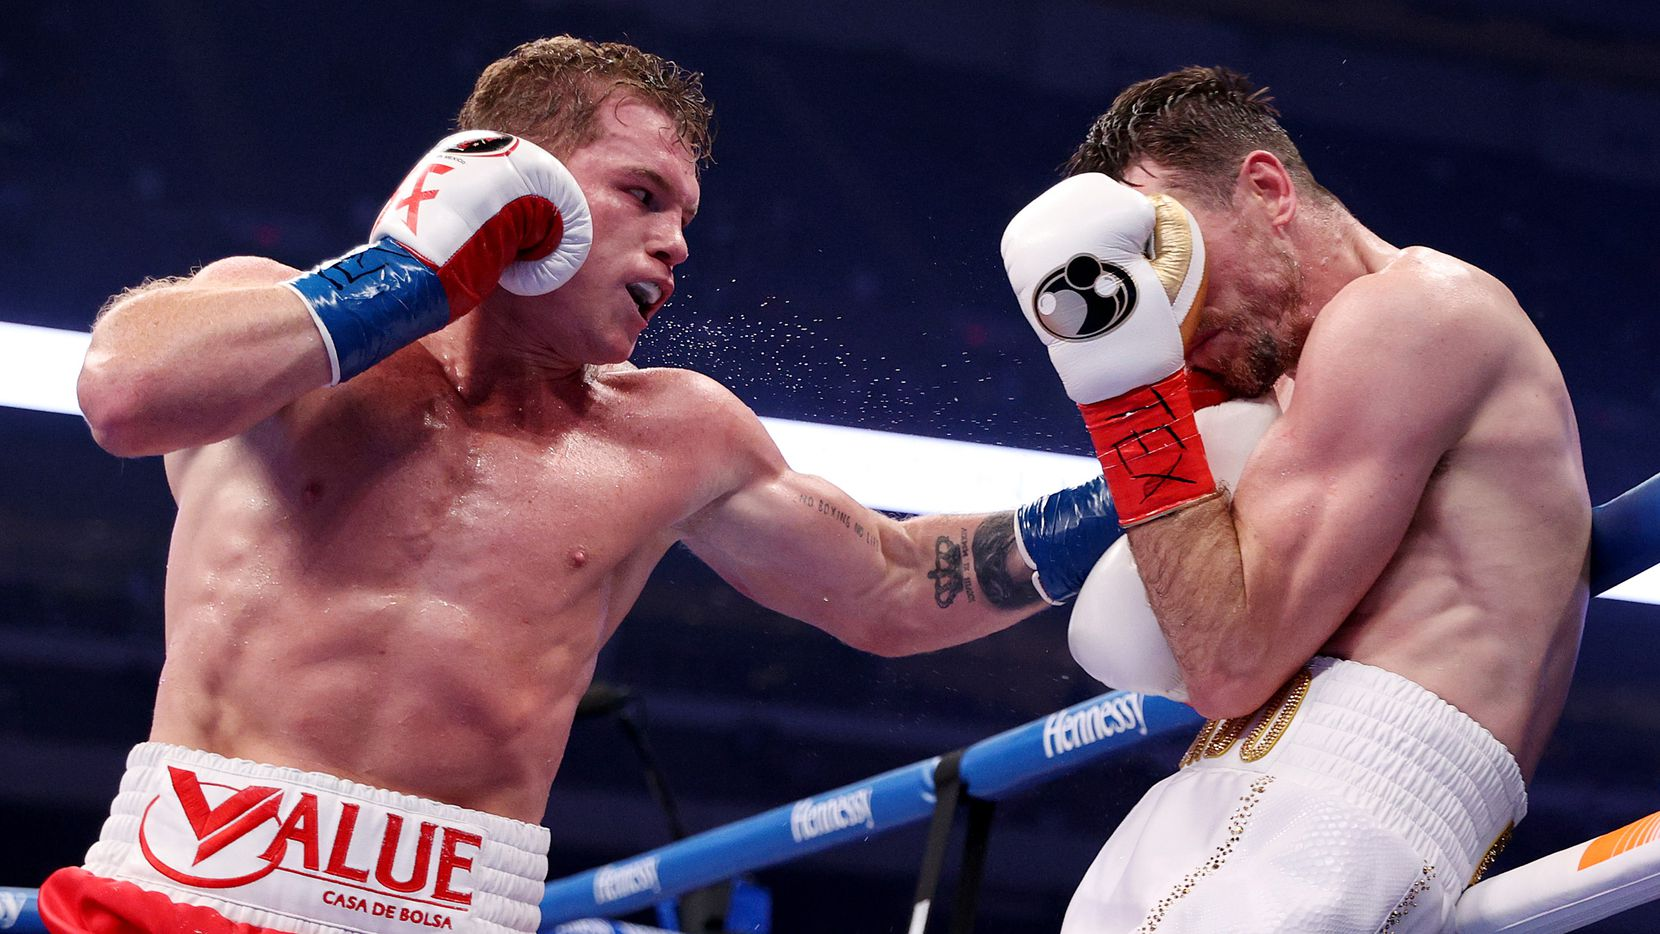 In this handout image provided by Matchroom, Canelo Alvarez punches Callum Smith during their super middleweight title bout at the Alamodome on Dec. 19, 2020, in San Antonio.